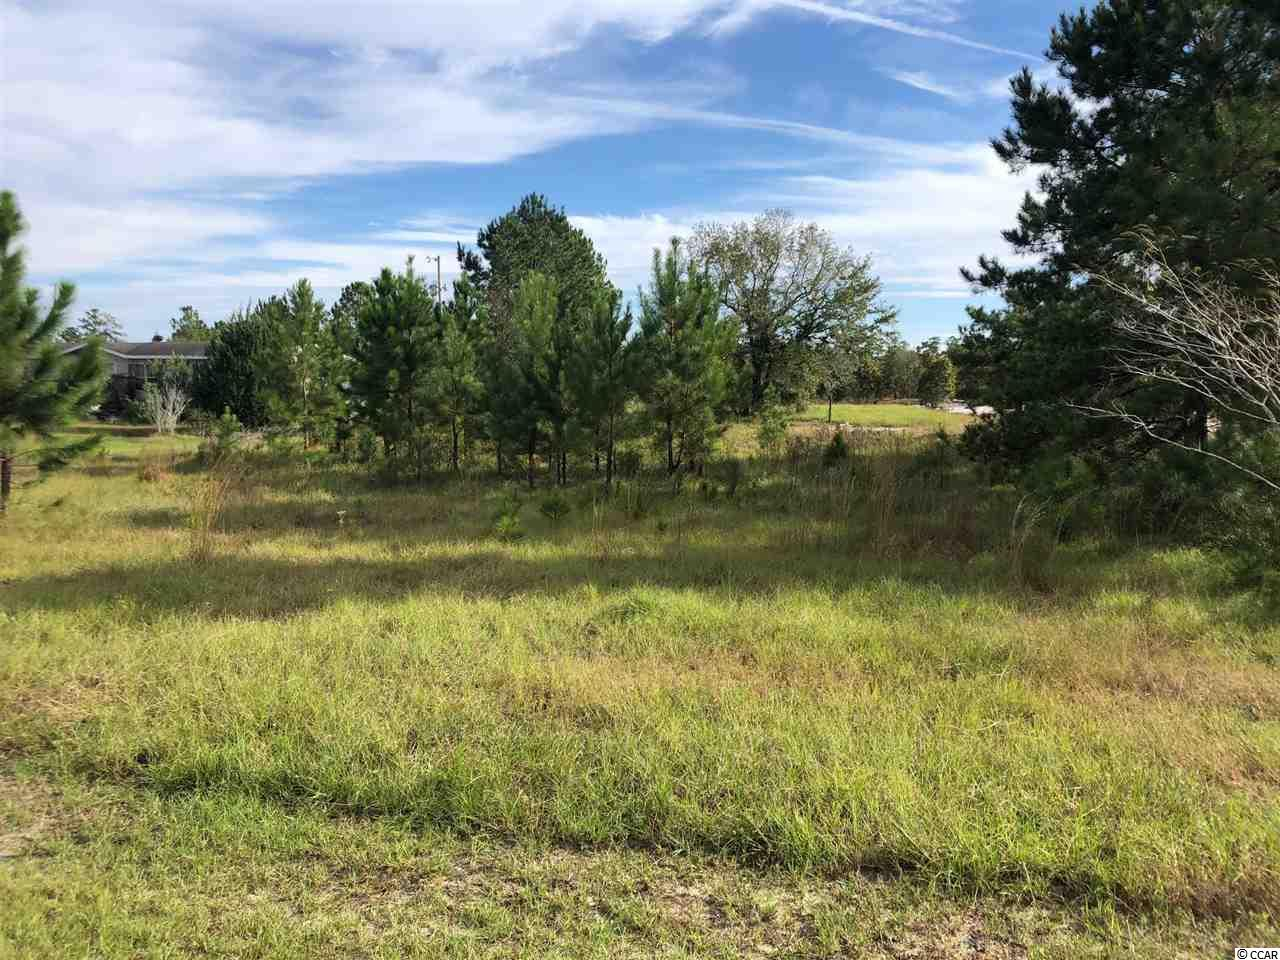 Lot 5 in Black River Estates.  This 1/2 acre lot is ready to go with water available and 105 feet fronting Frances Marion Drive.  Buyers agent is responsible for measurements.